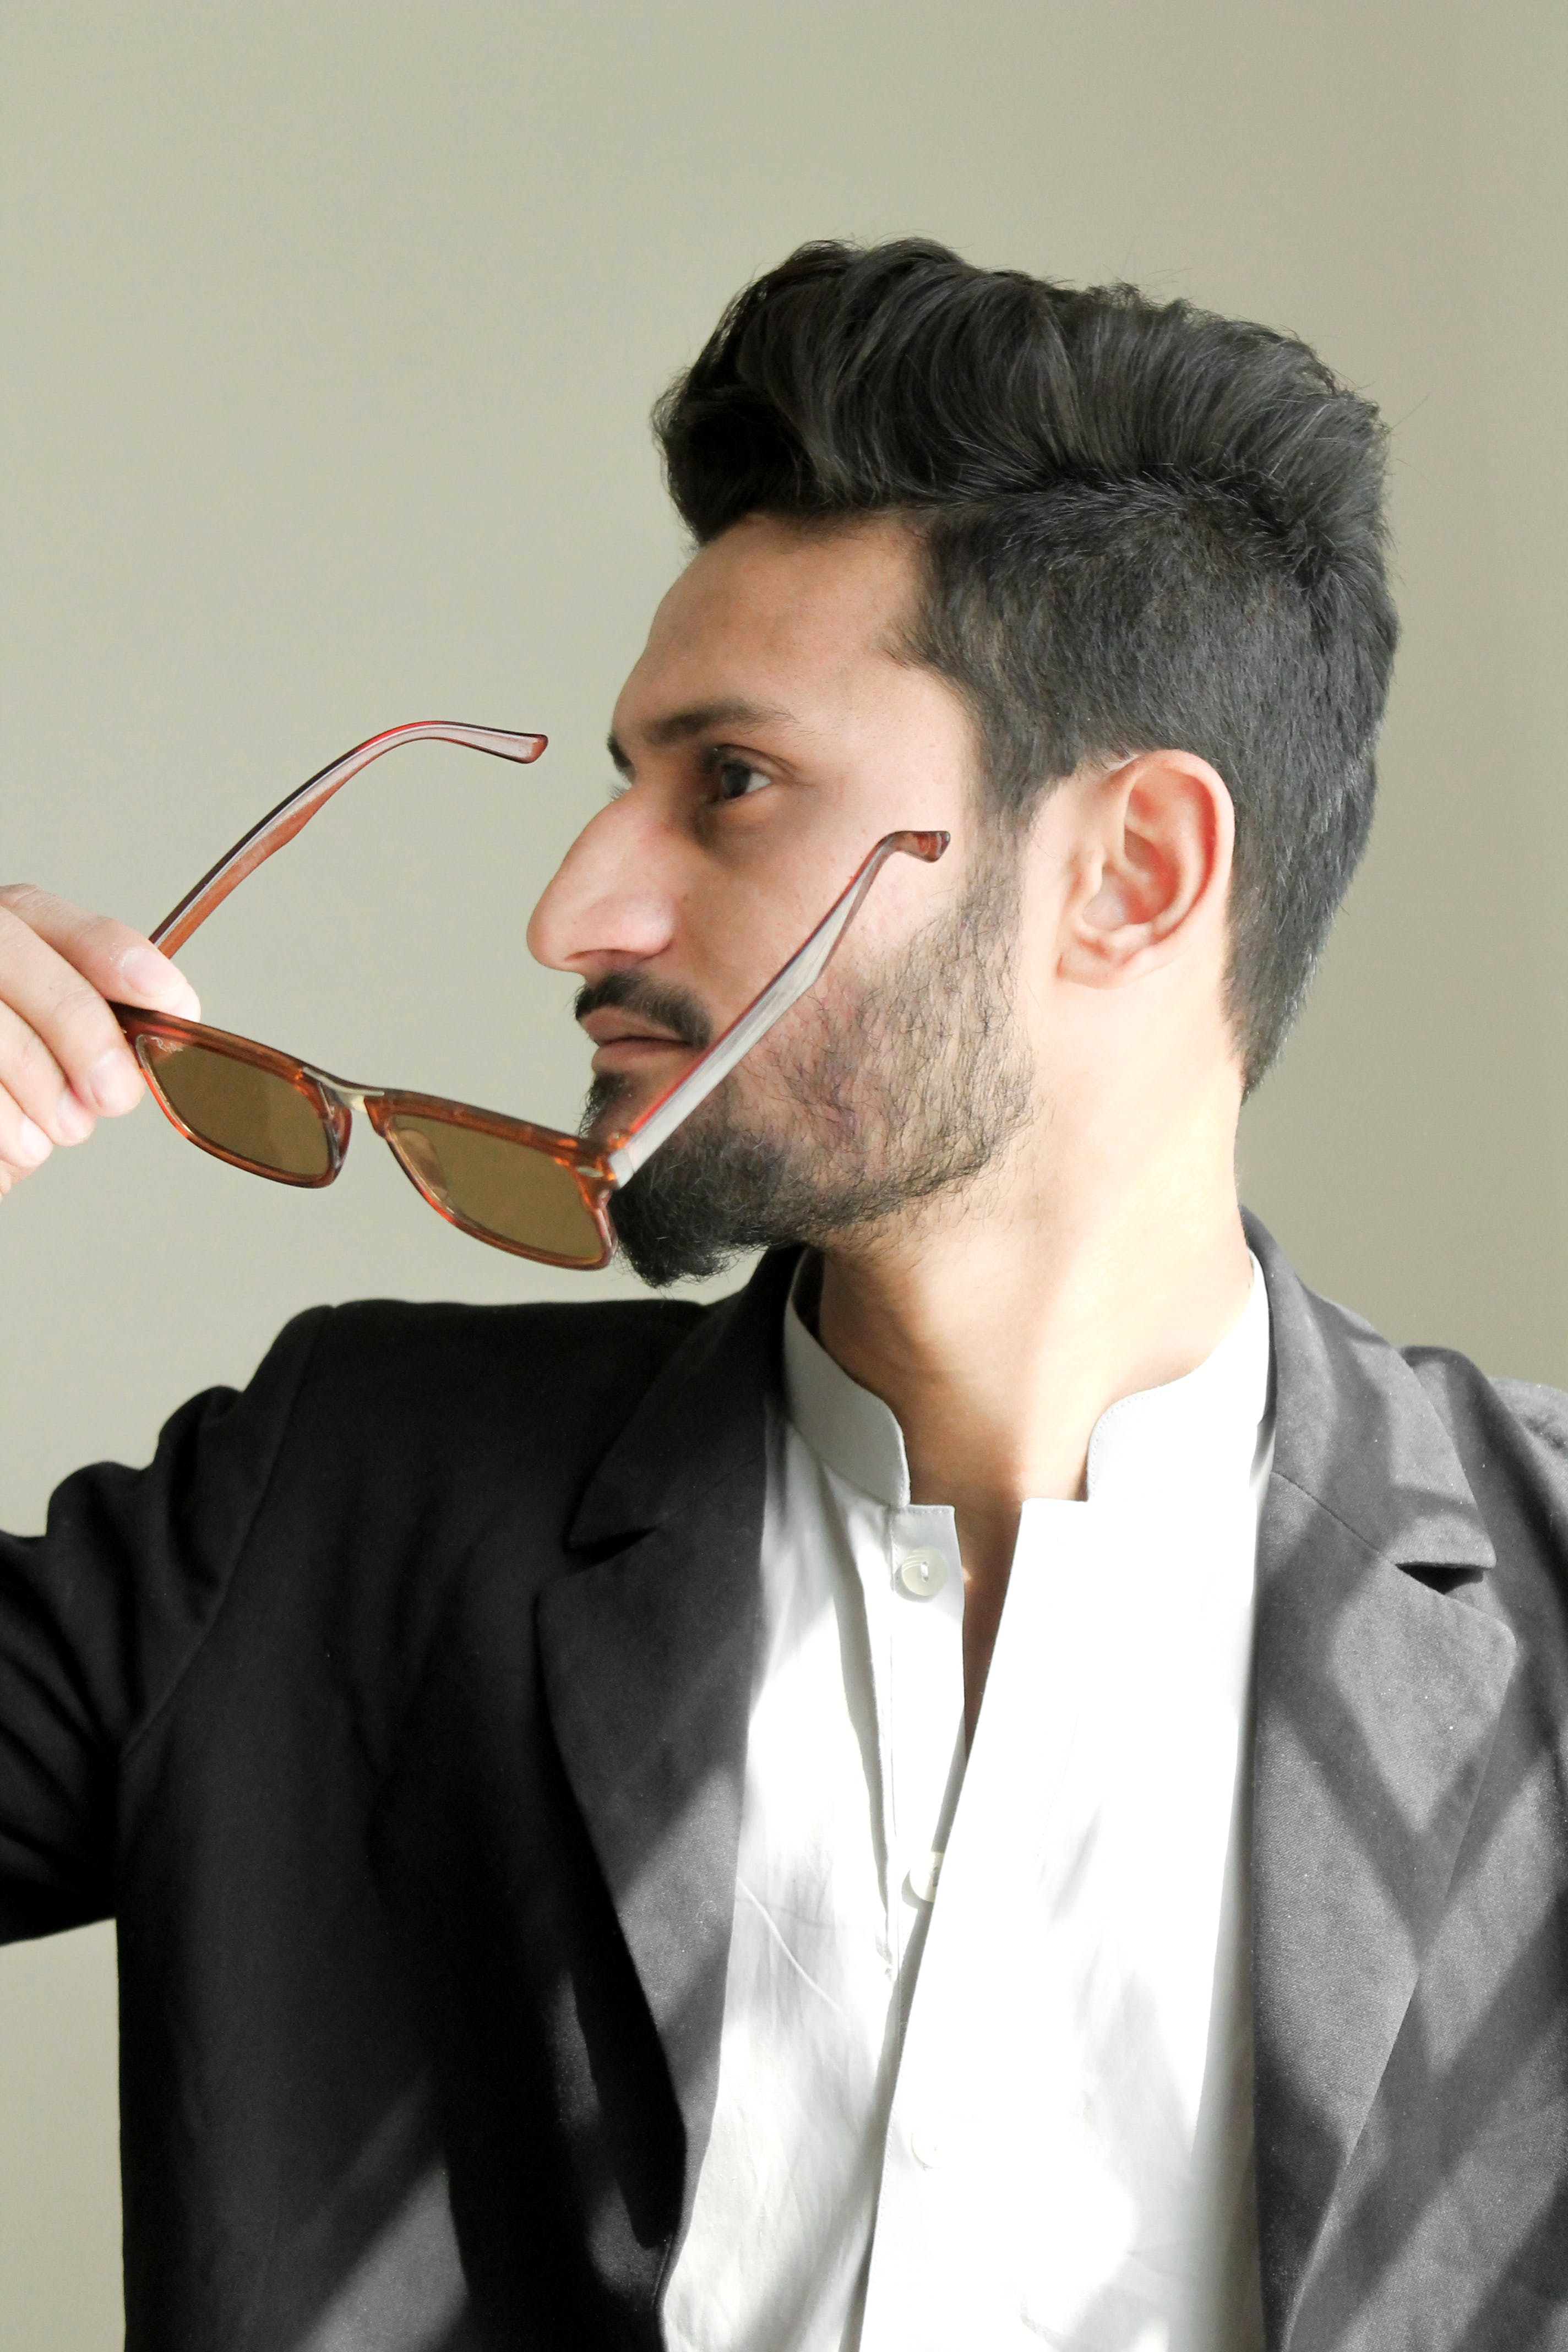 Man Holding Brown Framed Sunglasses With Black Suit